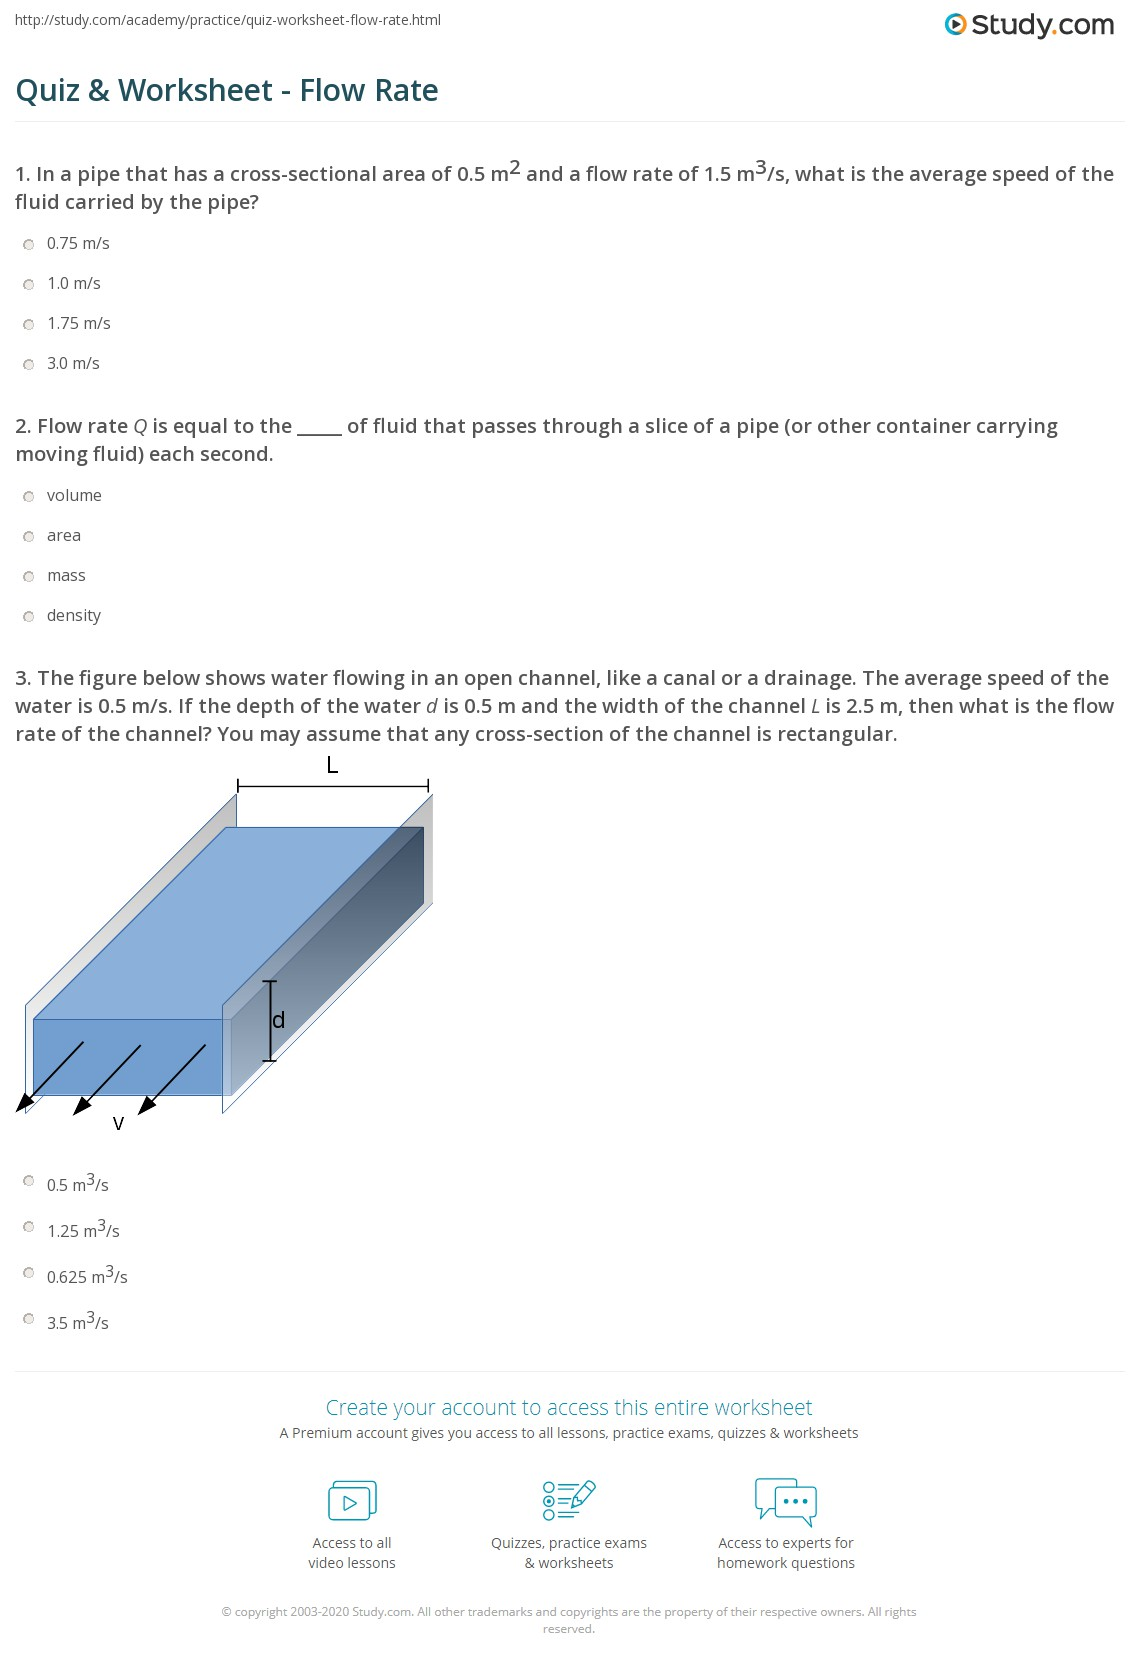 Print Flow Rate: Definition & Equation Worksheet